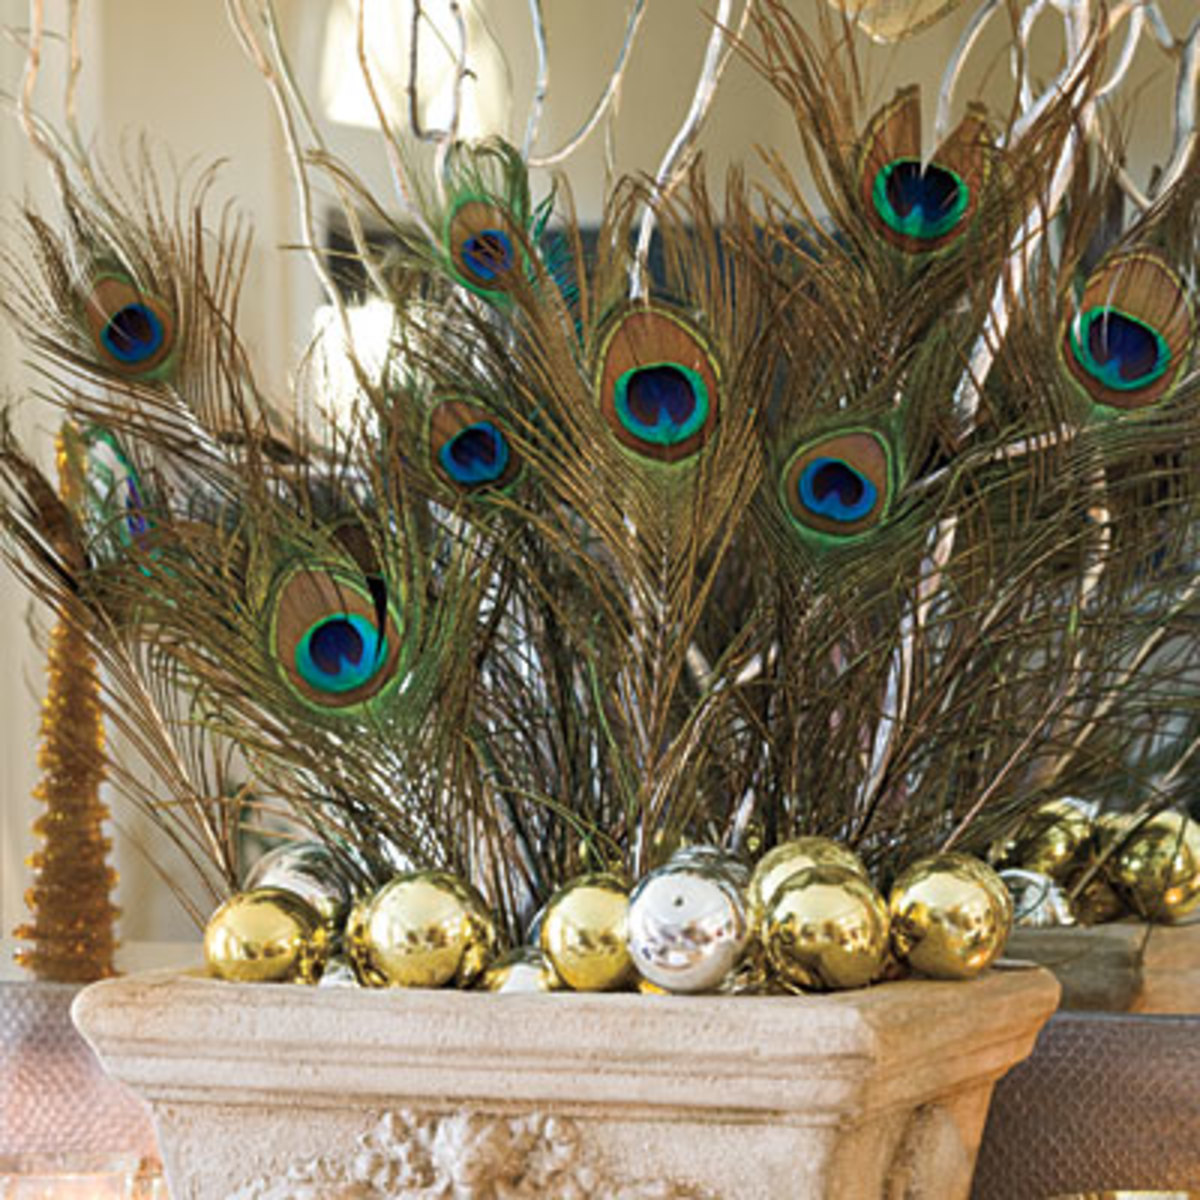 Else you can use your flower bouquet as usual but with few peacock feathers